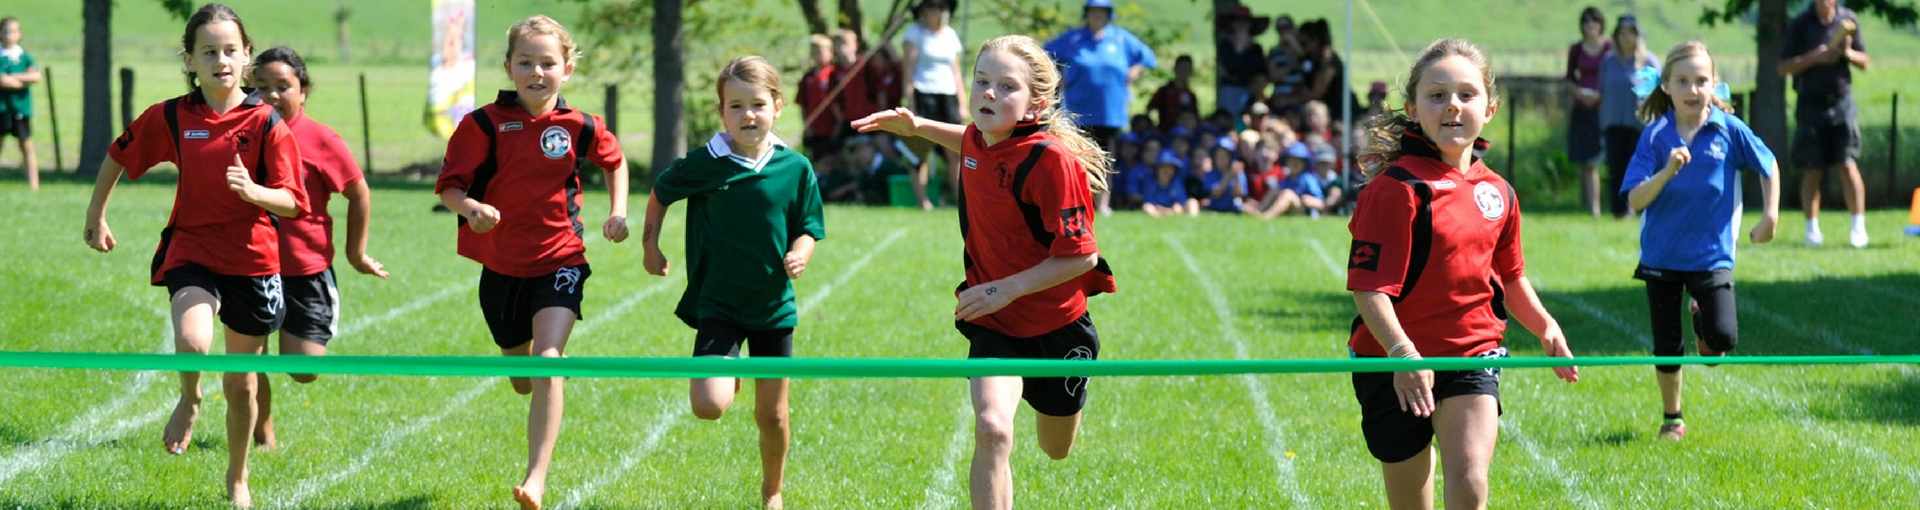 Young children cross the finish line during school sport